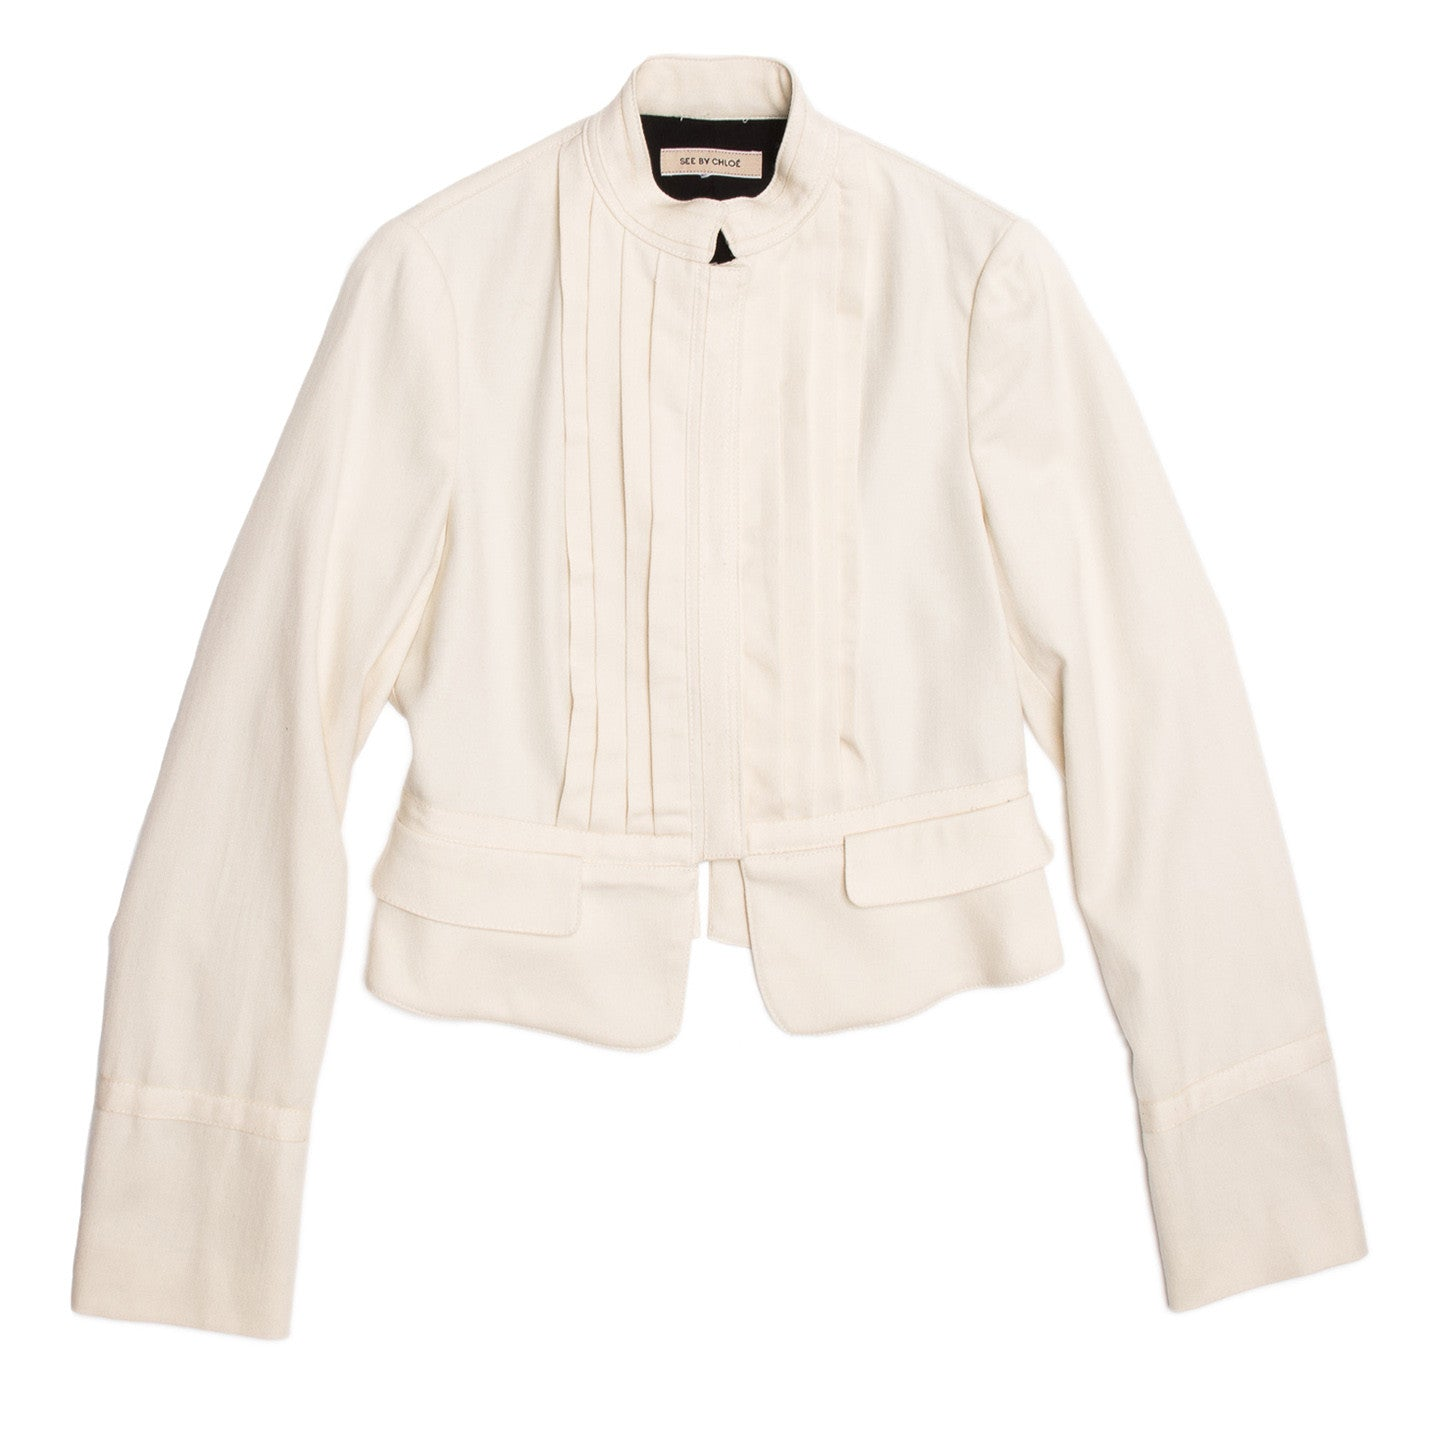 See By Chloe Cream Bellboy Cut Jacket, Size 46 (Italian)